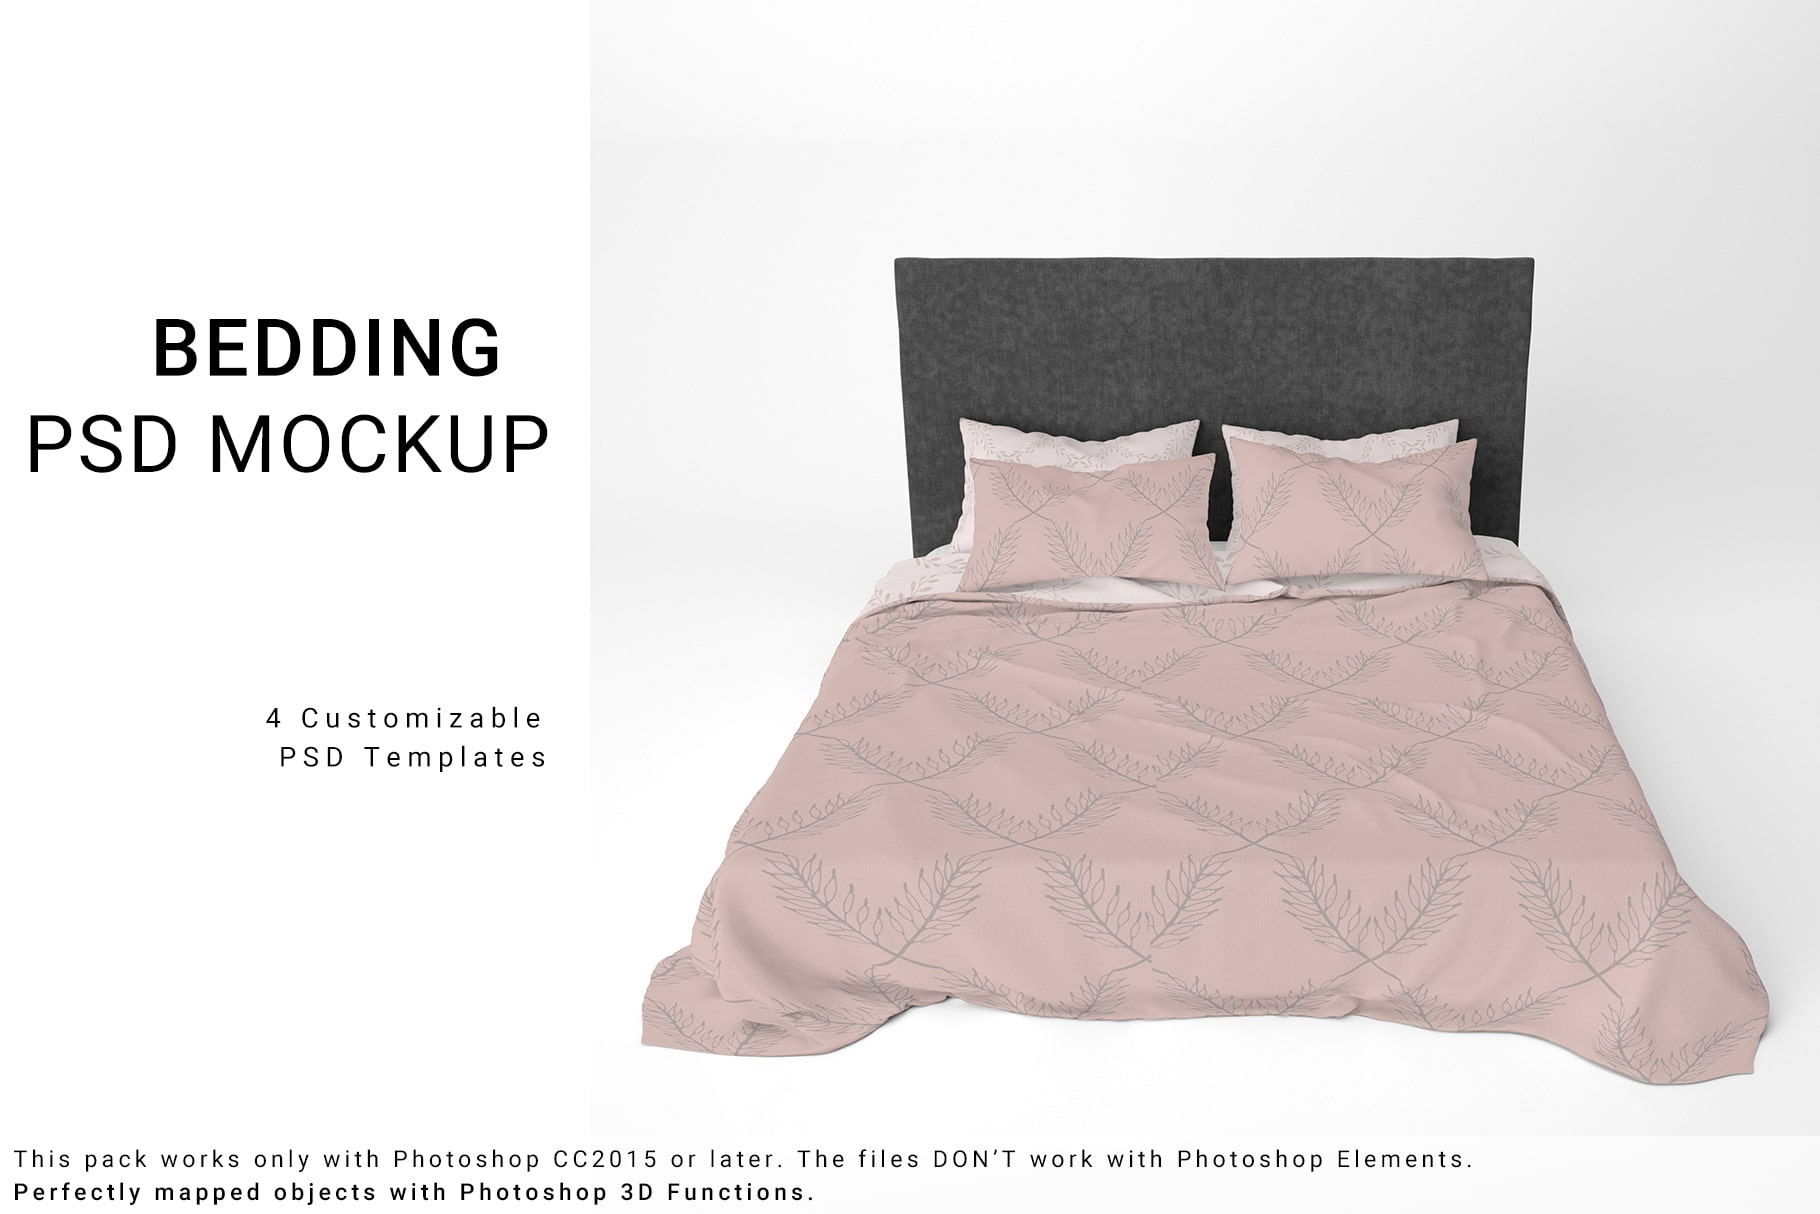 Duvet and Pillowcases Bedding Set Free Mockup - commercial use freebies